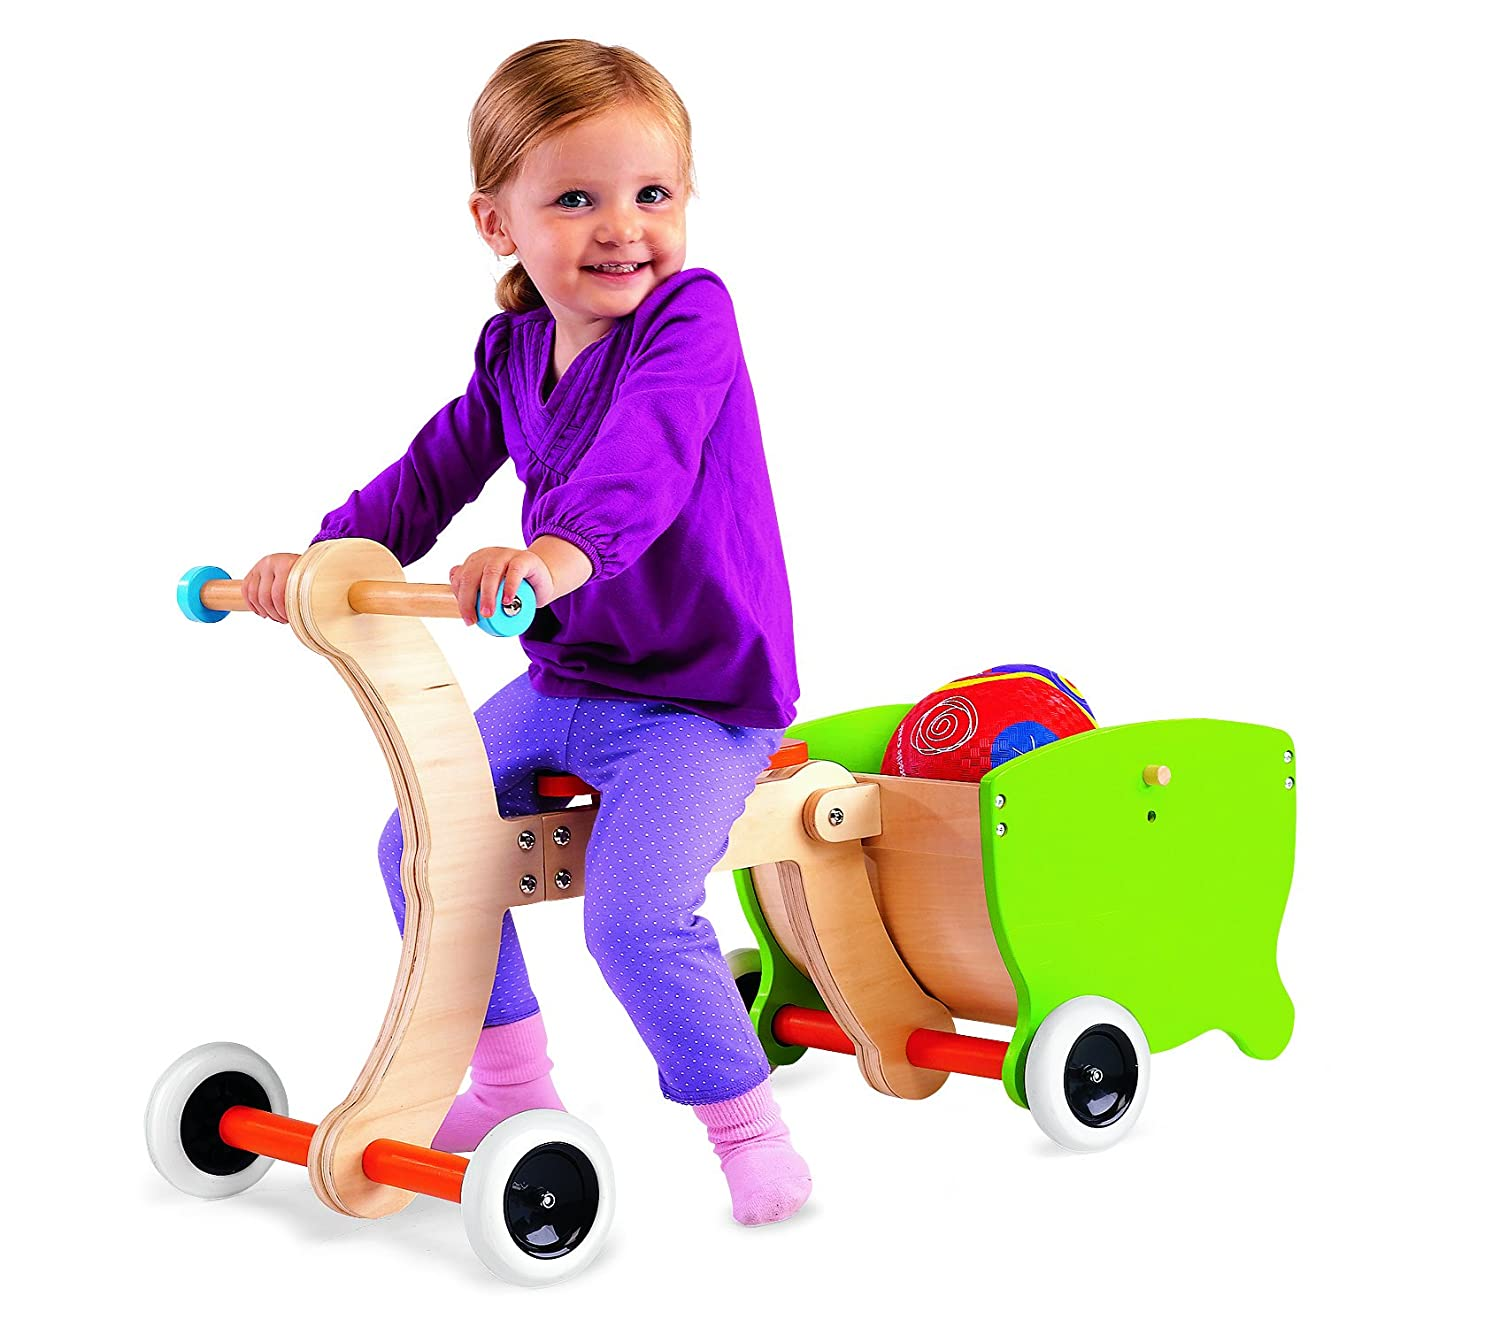 Amazon 1 2 3 Grow With Me Wooden Walker Ride on Toy Trolley